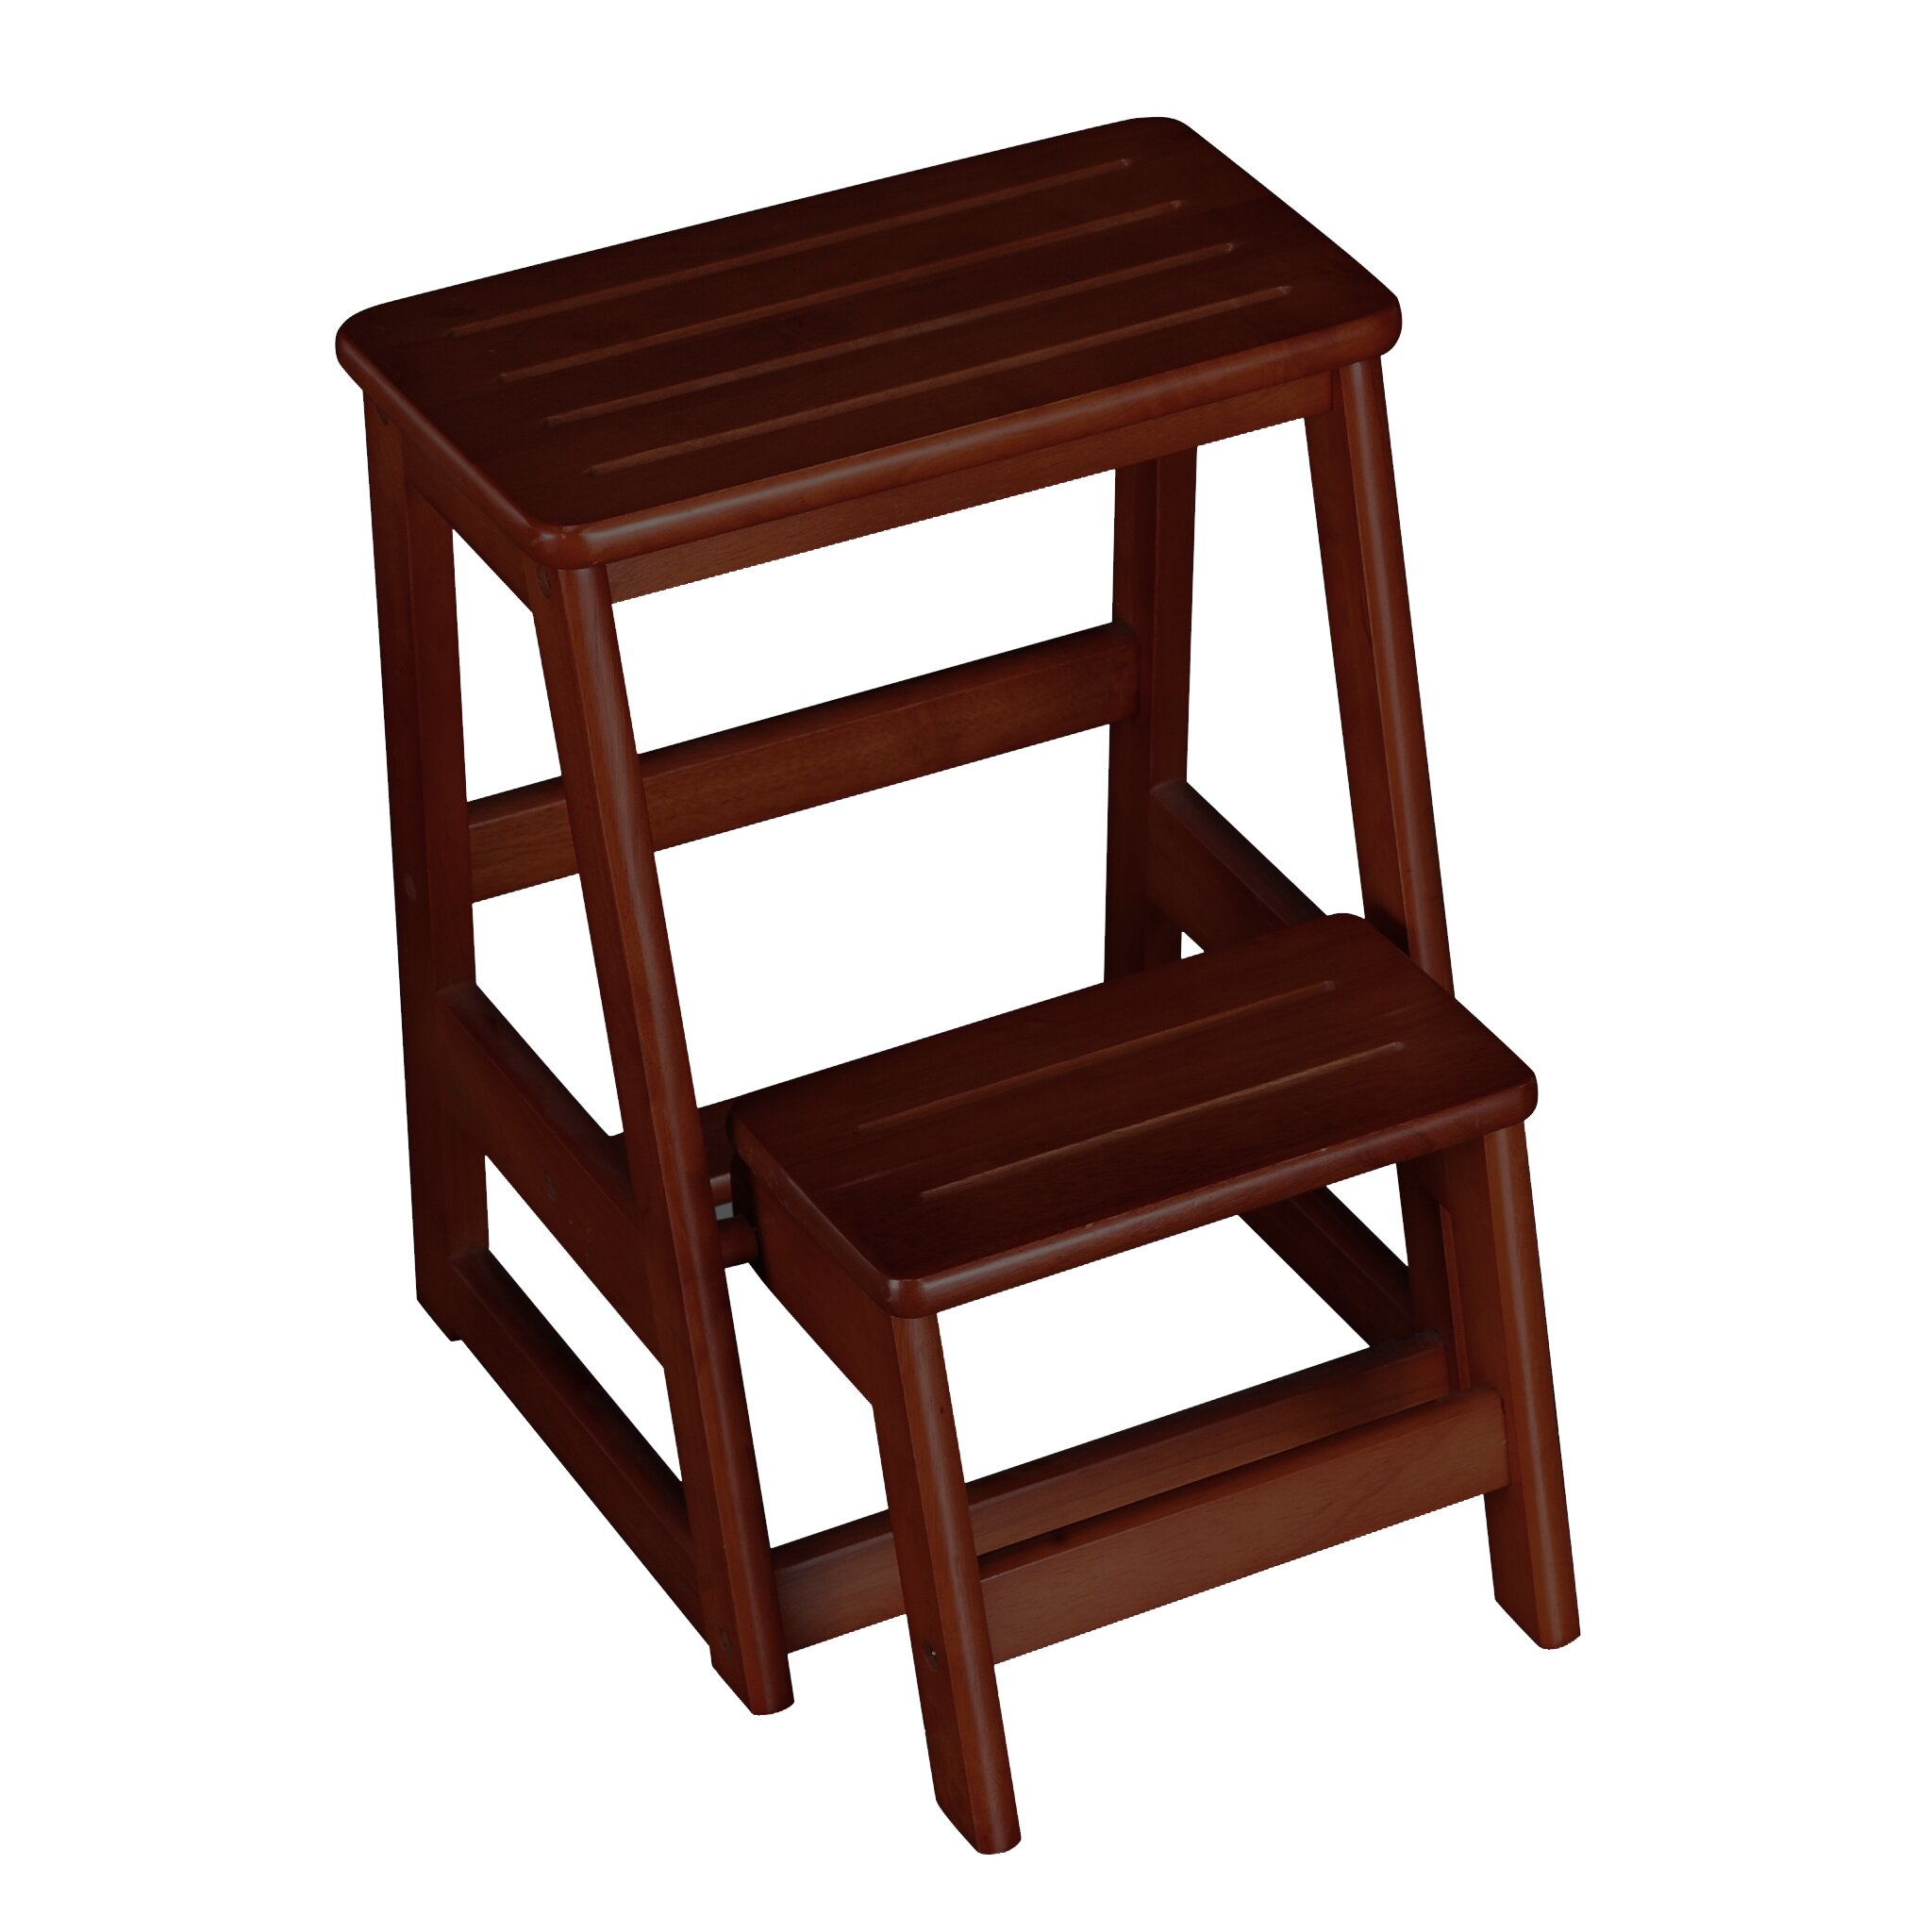 wildon home 2 step wood folding compact step stool with 200 lbs load capacity reviews. Black Bedroom Furniture Sets. Home Design Ideas